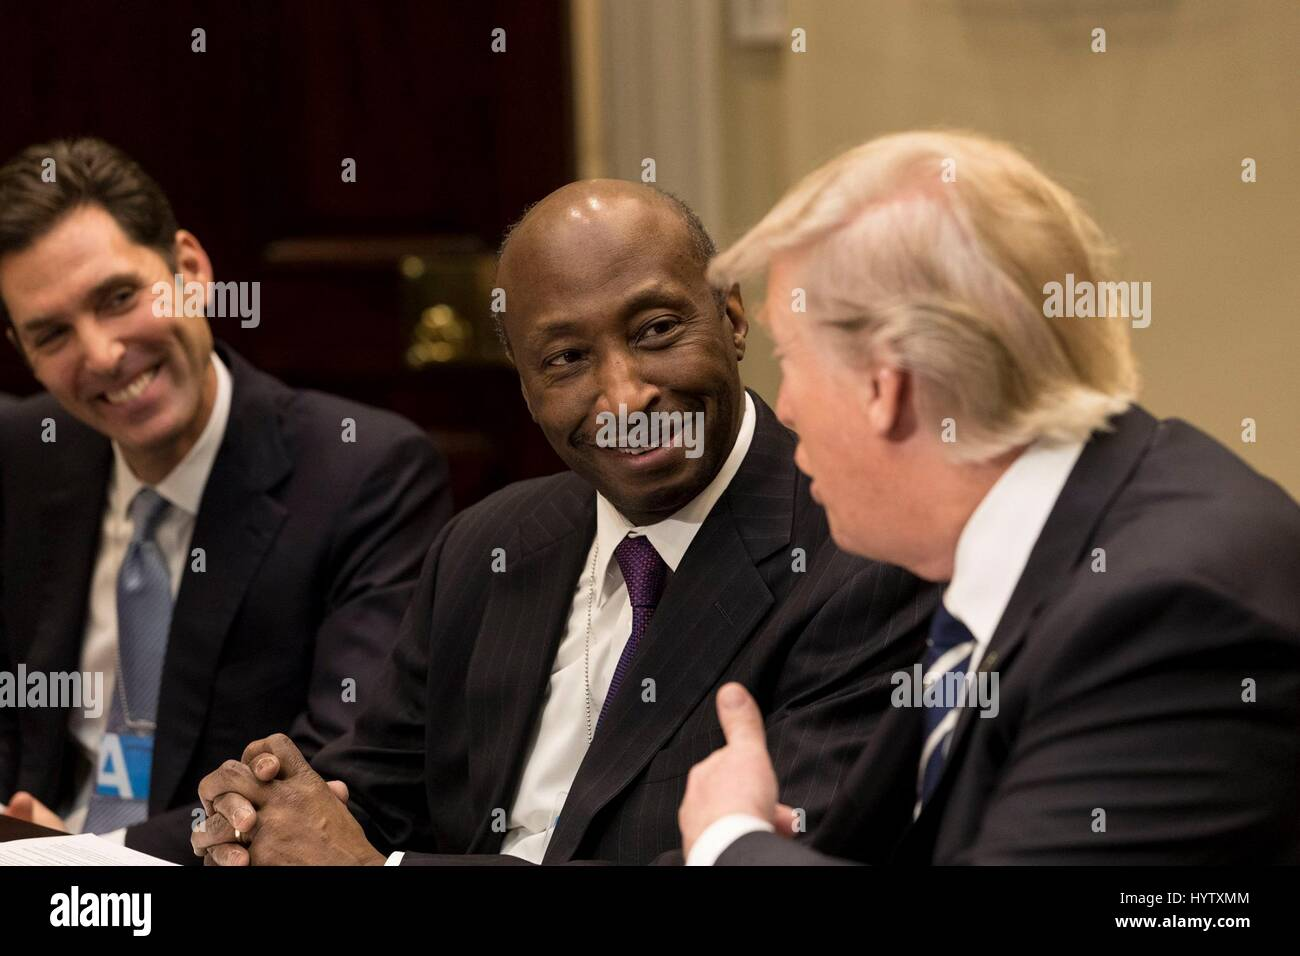 U.S President Donald Trump speaks to Kenneth Frazier, chairman and CEO of Merck & Co., during a meeting with - Stock Image